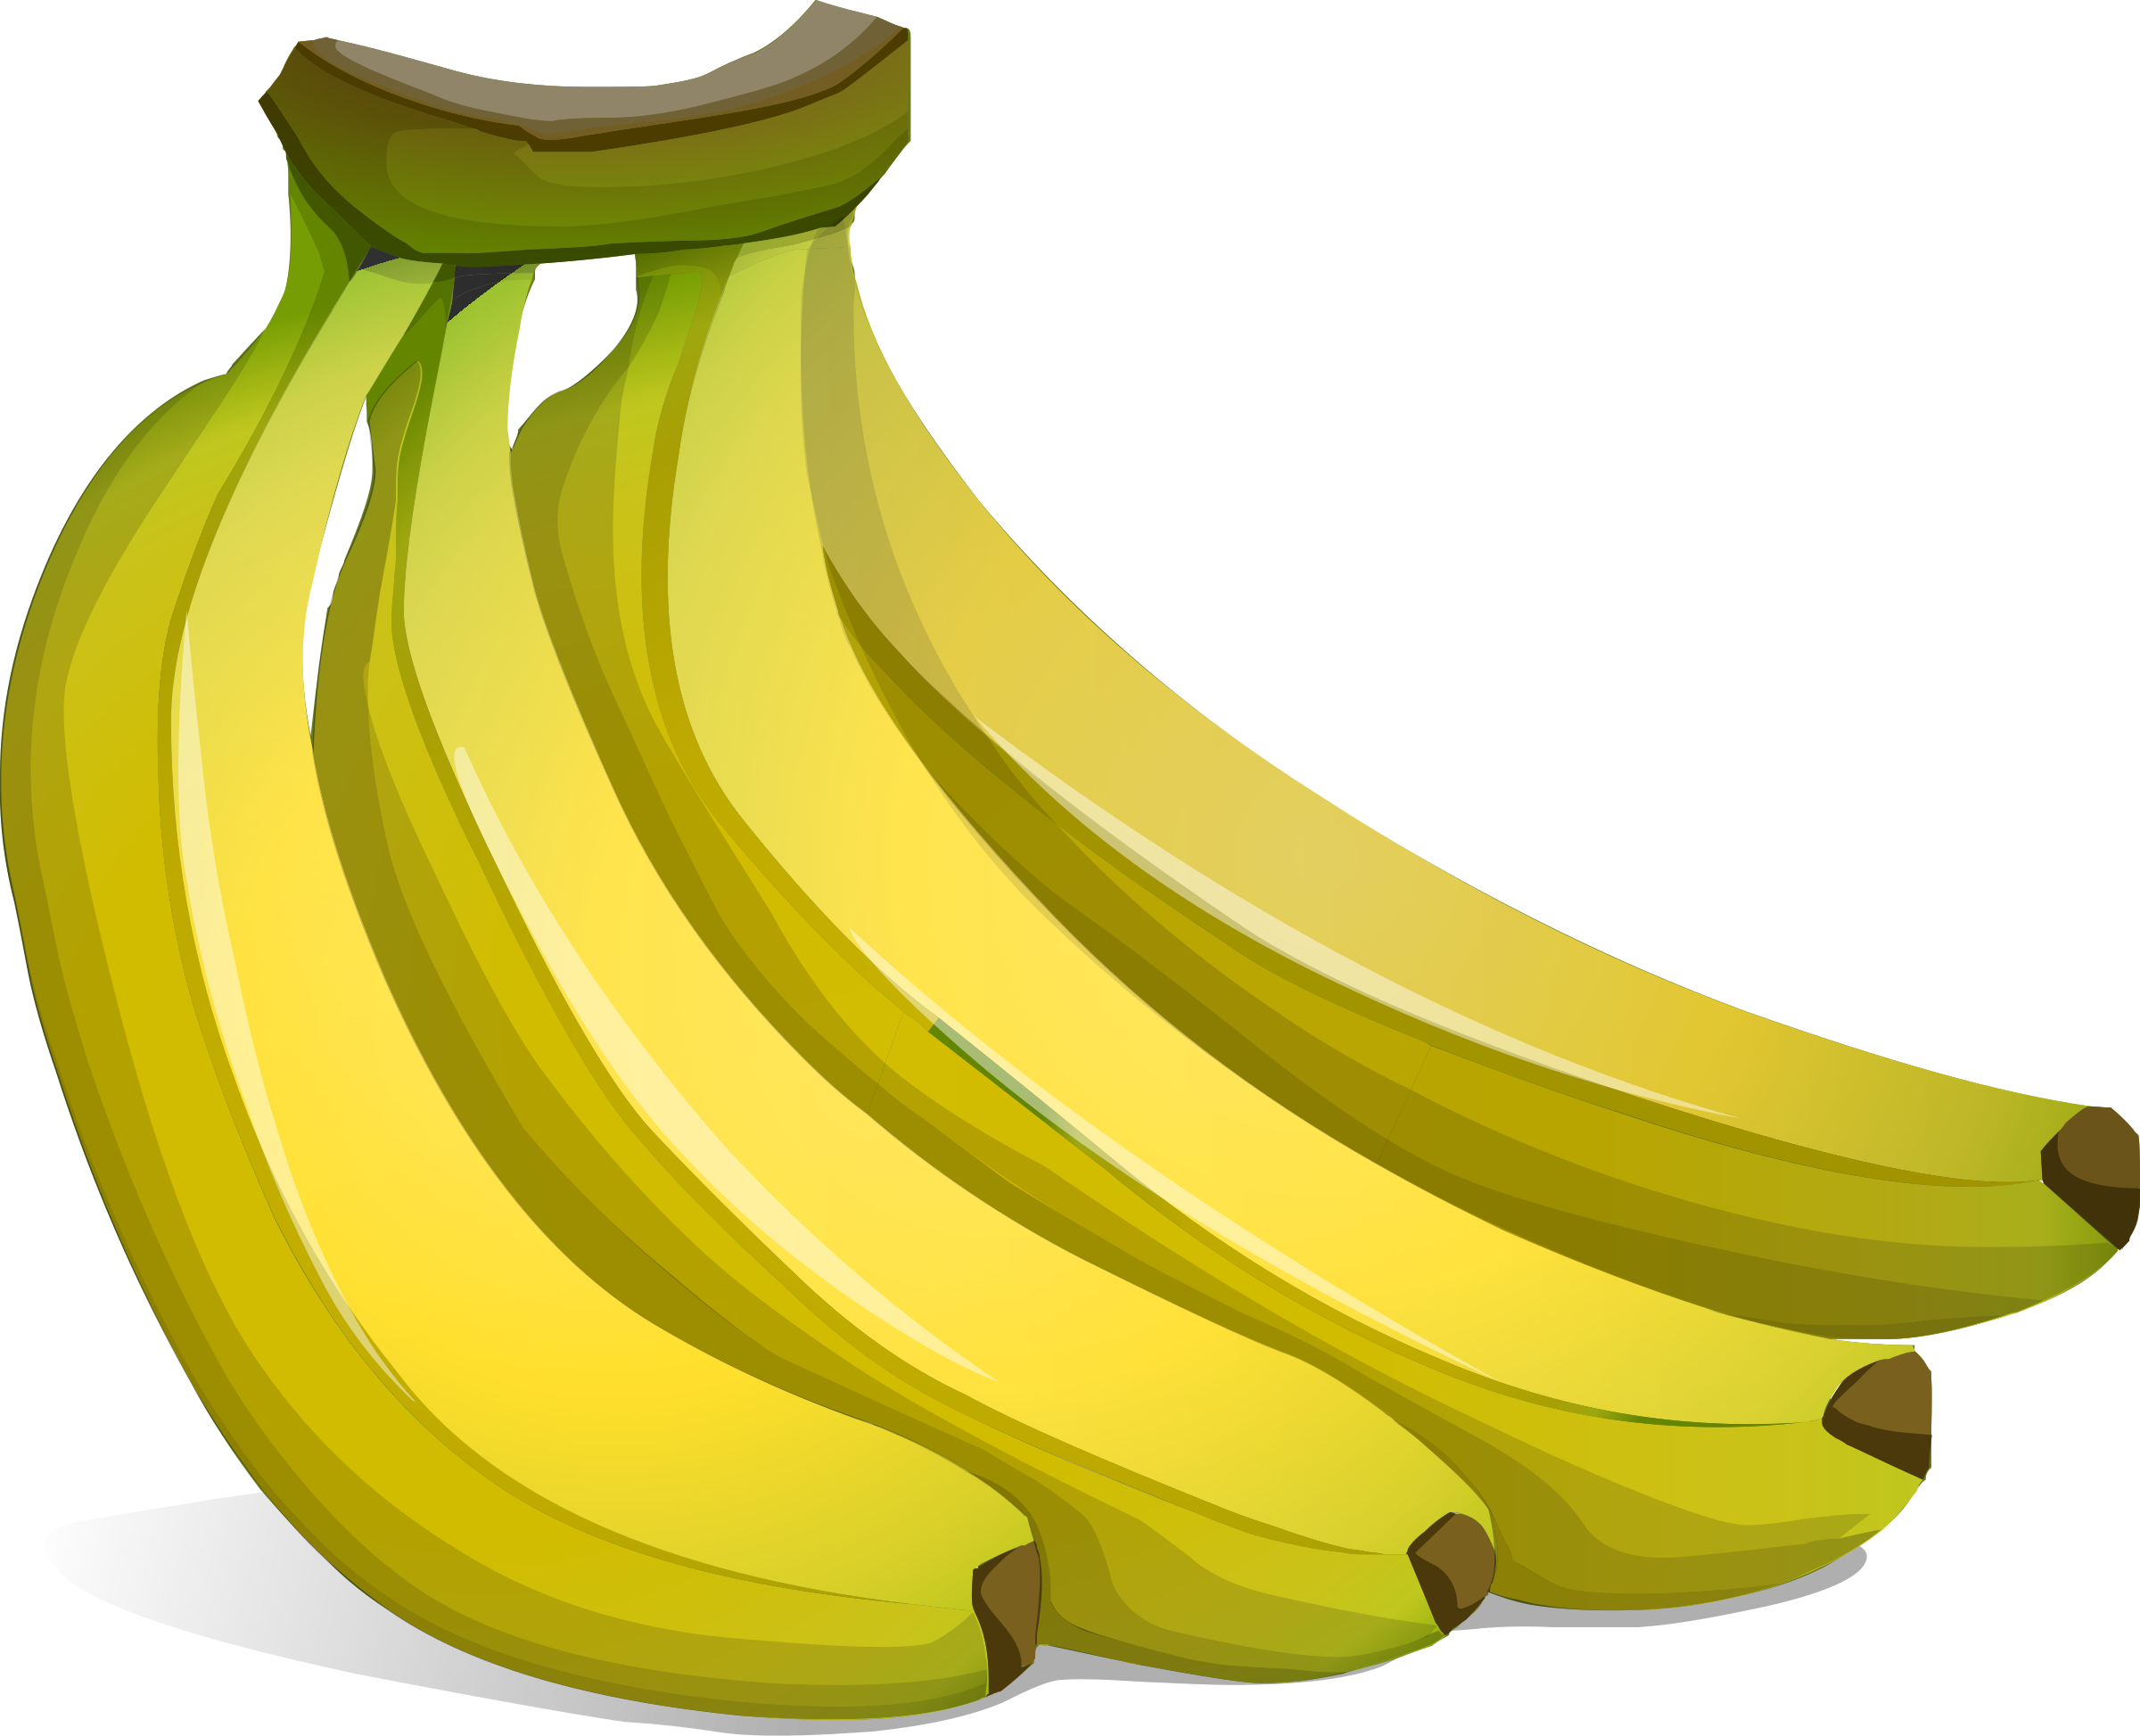 Bananas clipart. A bunch of big